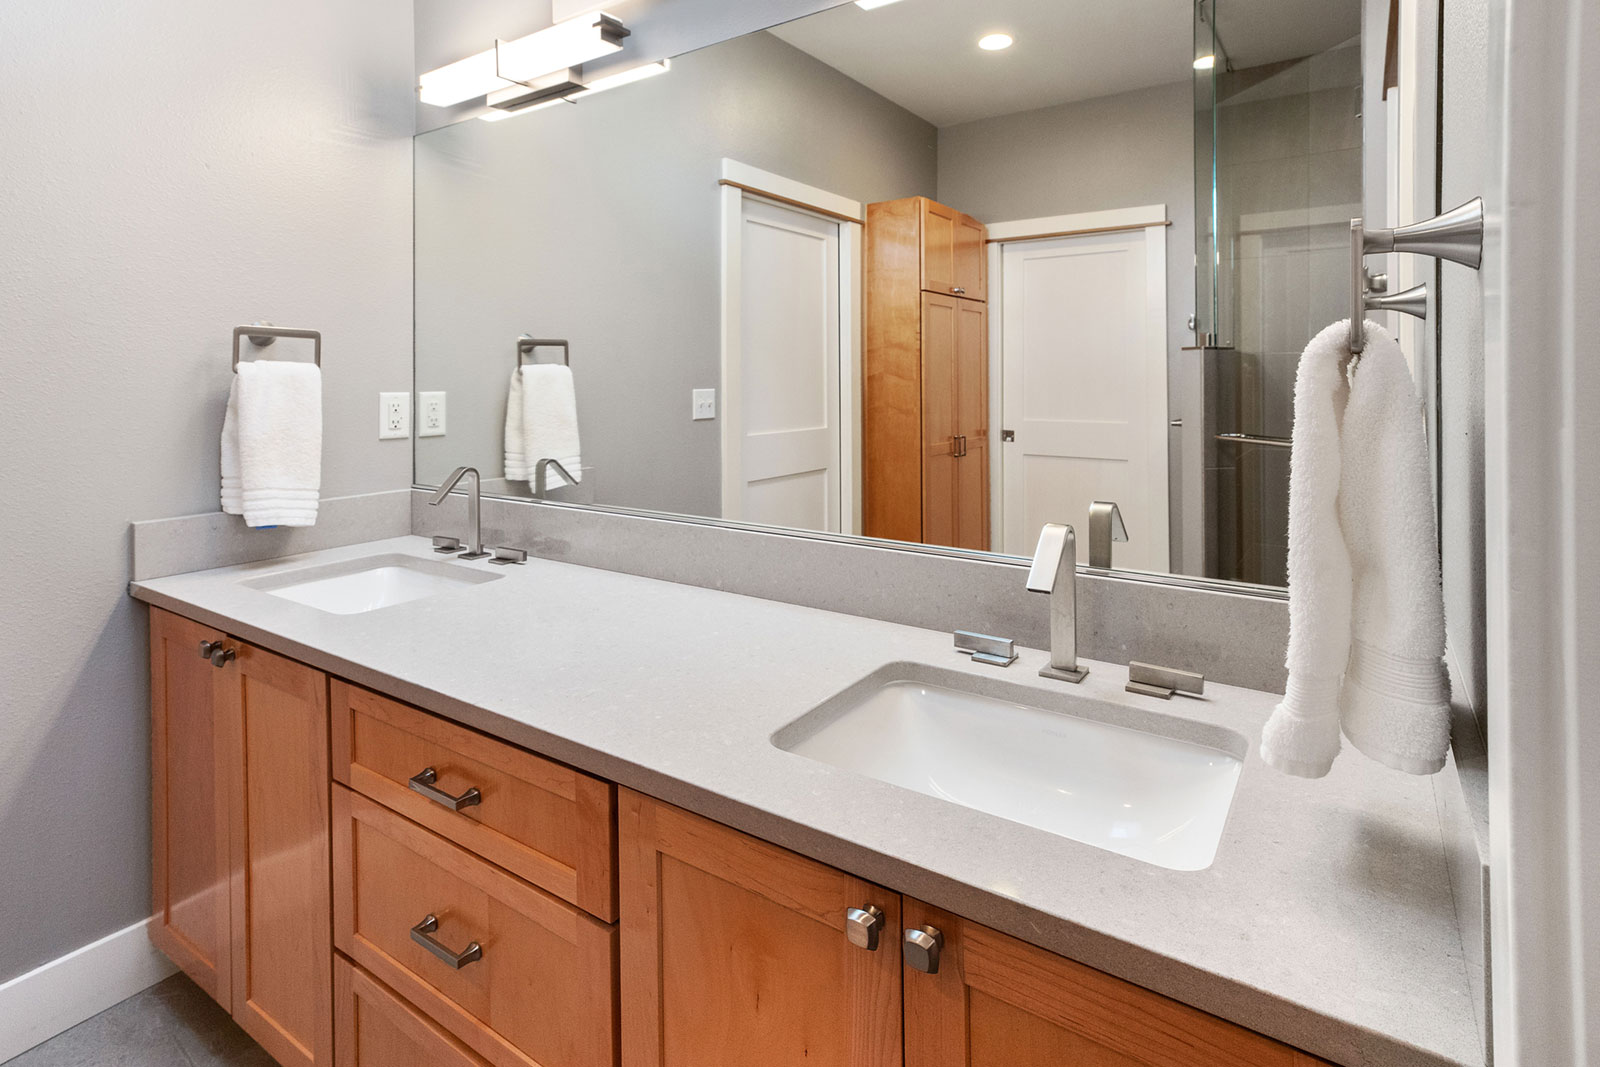 home, bathroom remodel - Henderer Design + Build, Corvallis OR